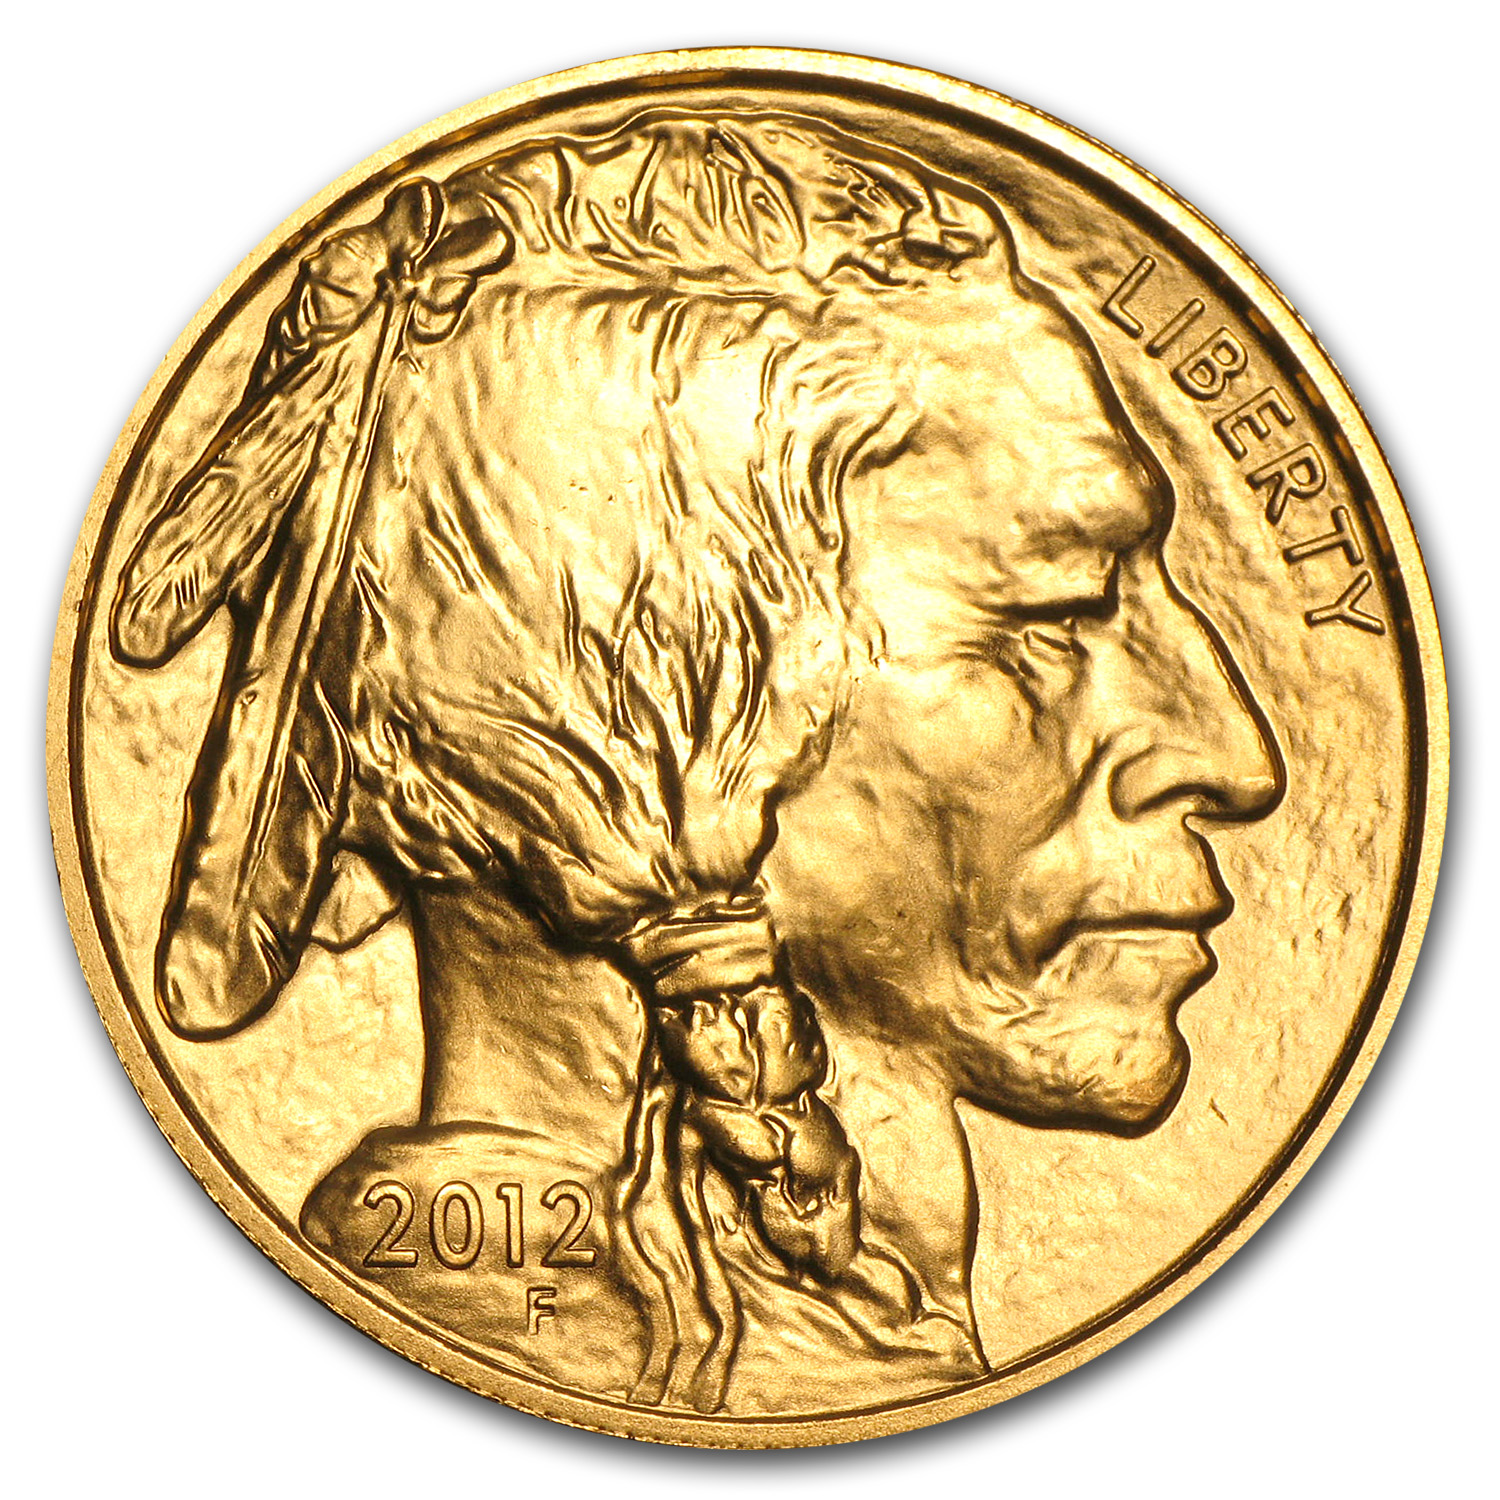 2012 1 oz Gold Buffalo BU